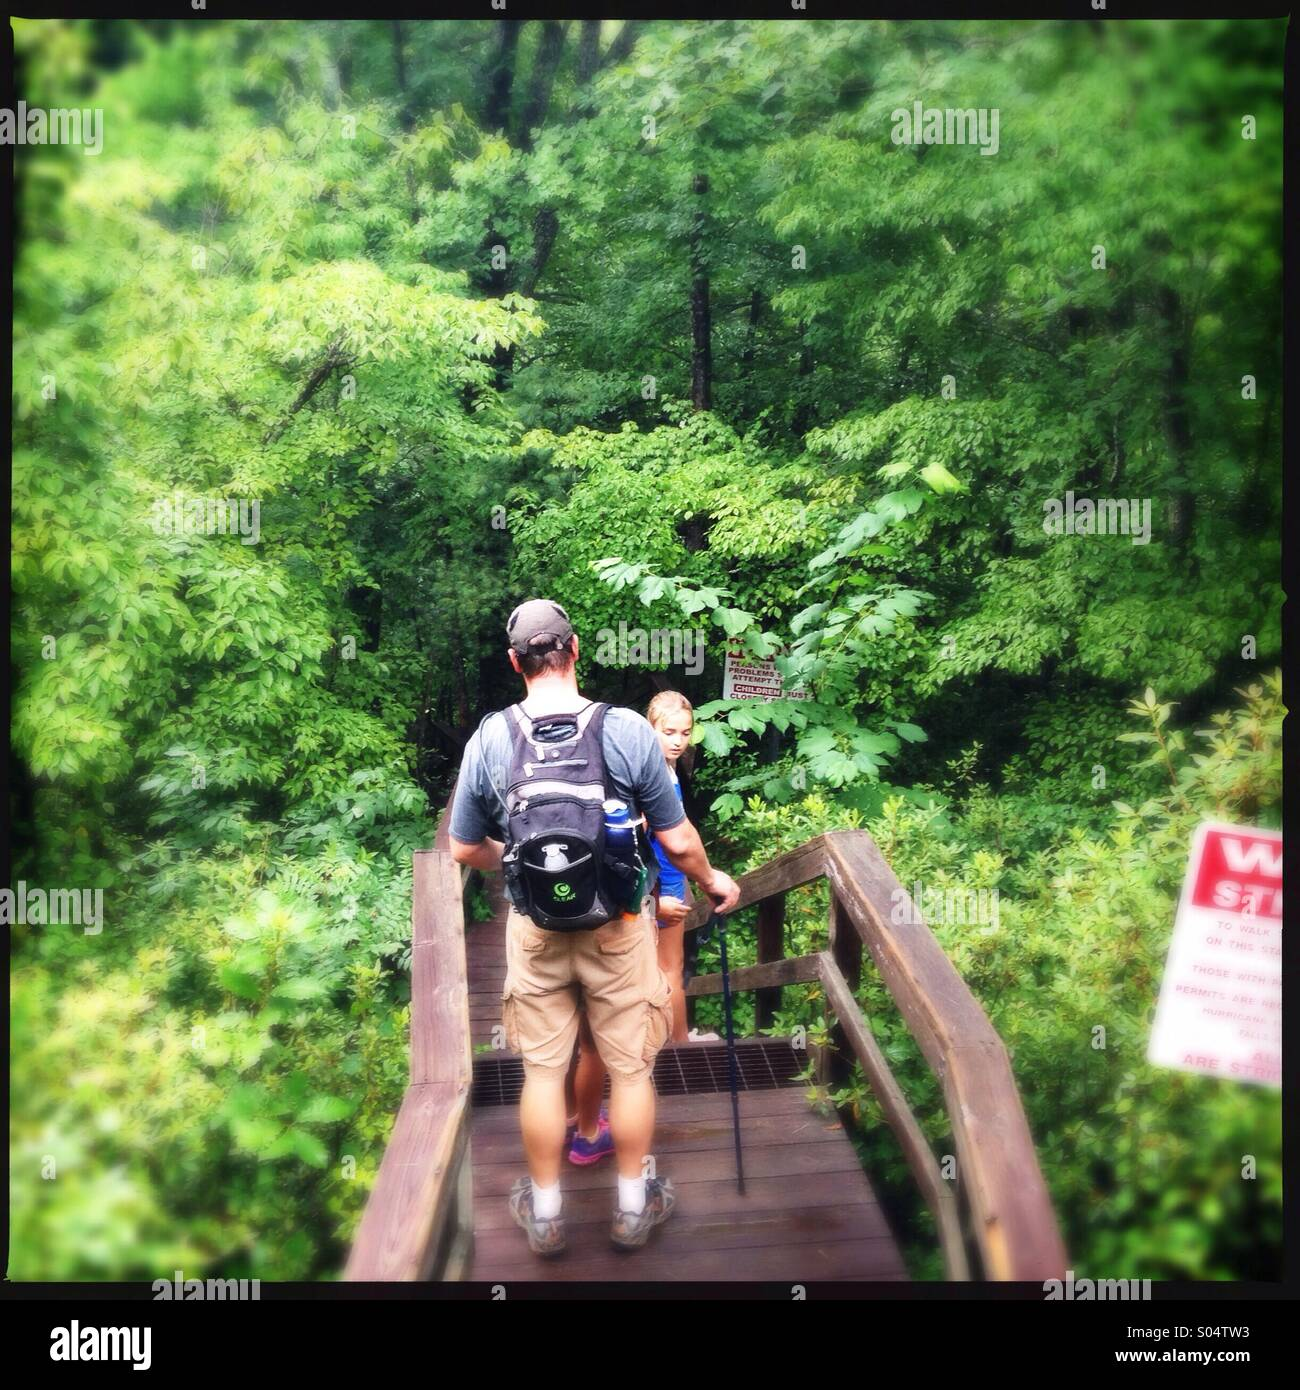 Hiking in Tallulah gorge state park in Georgia, USA - Stock Image